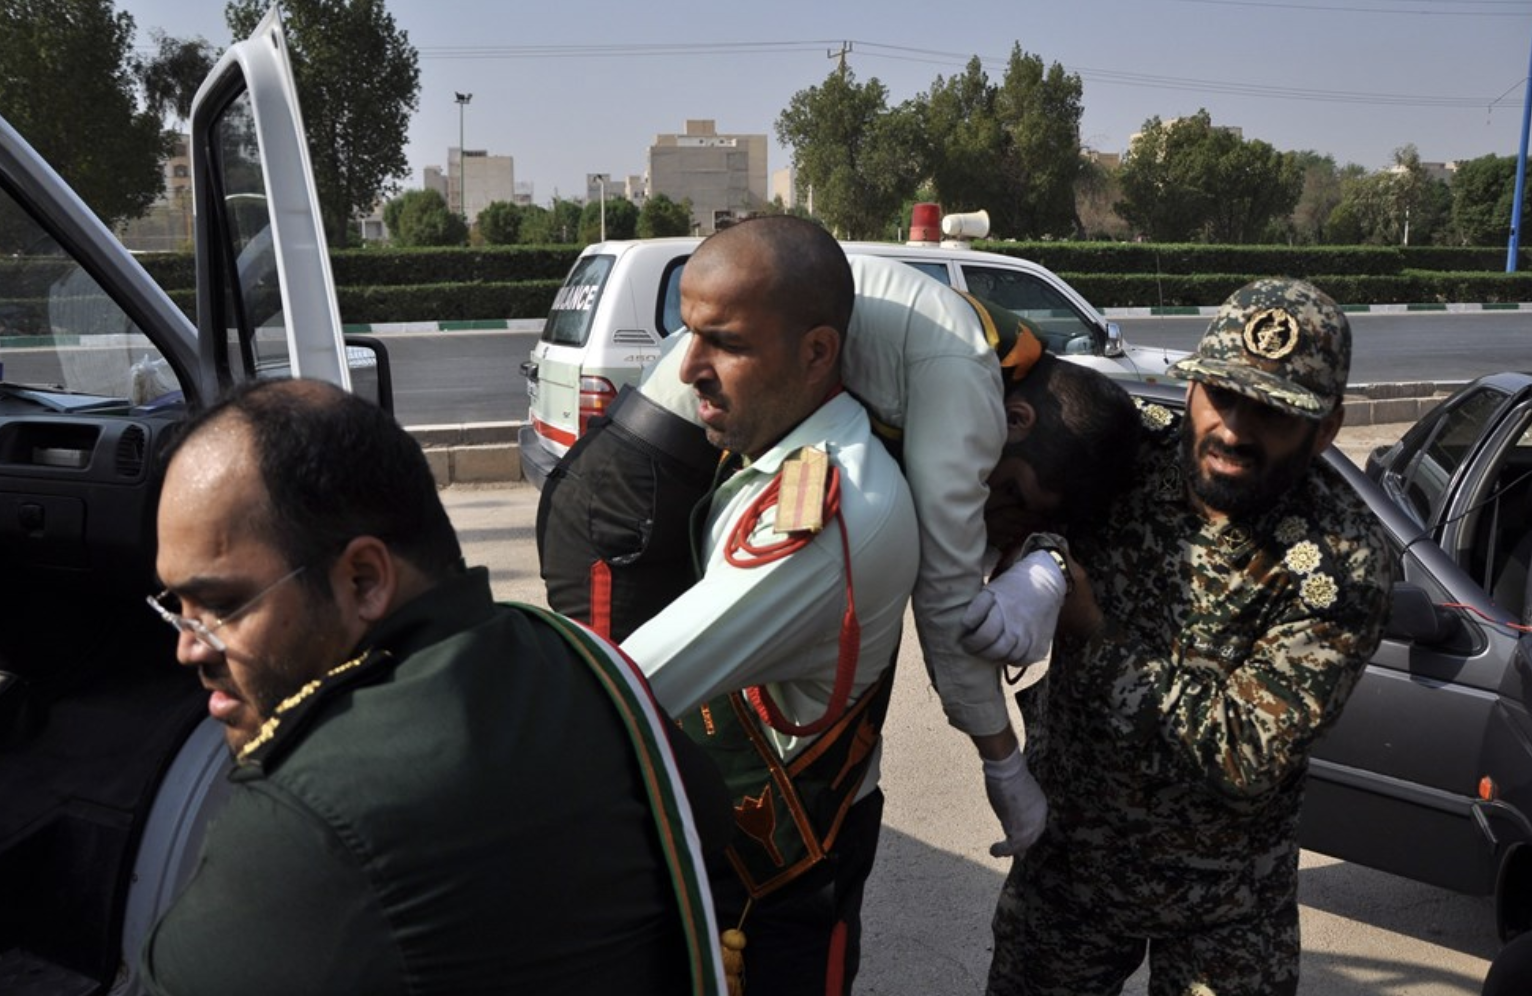 An injured member of the Iranian Revolutionary Guard is carried to get medical attention after Saturday's attack on a military parade in Iran.  Photo : Behrad Ghasemi/EPA